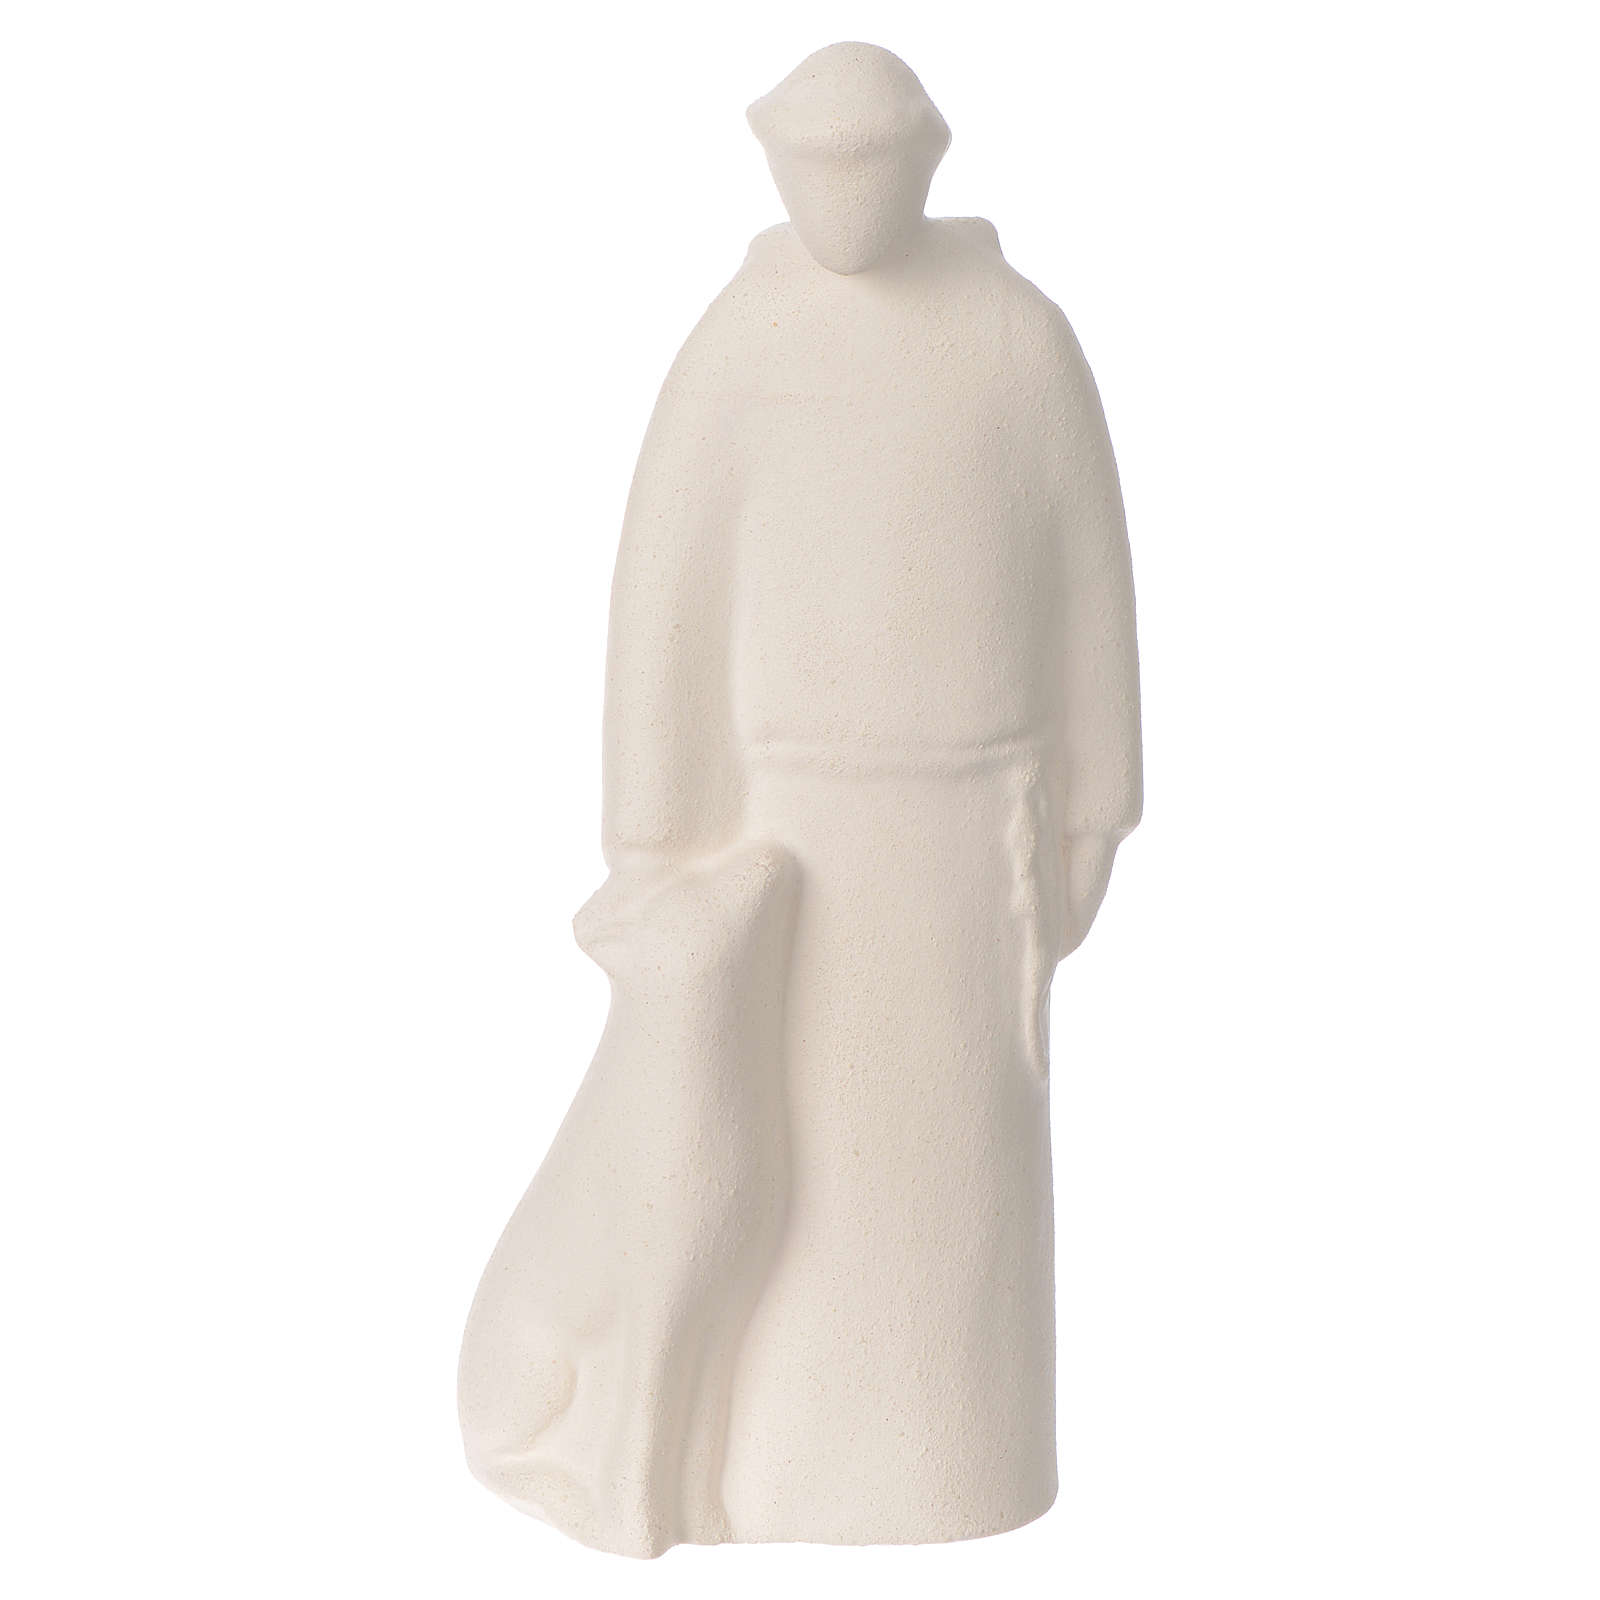 Saint Francis in clay Centro Ave 15 cm 4